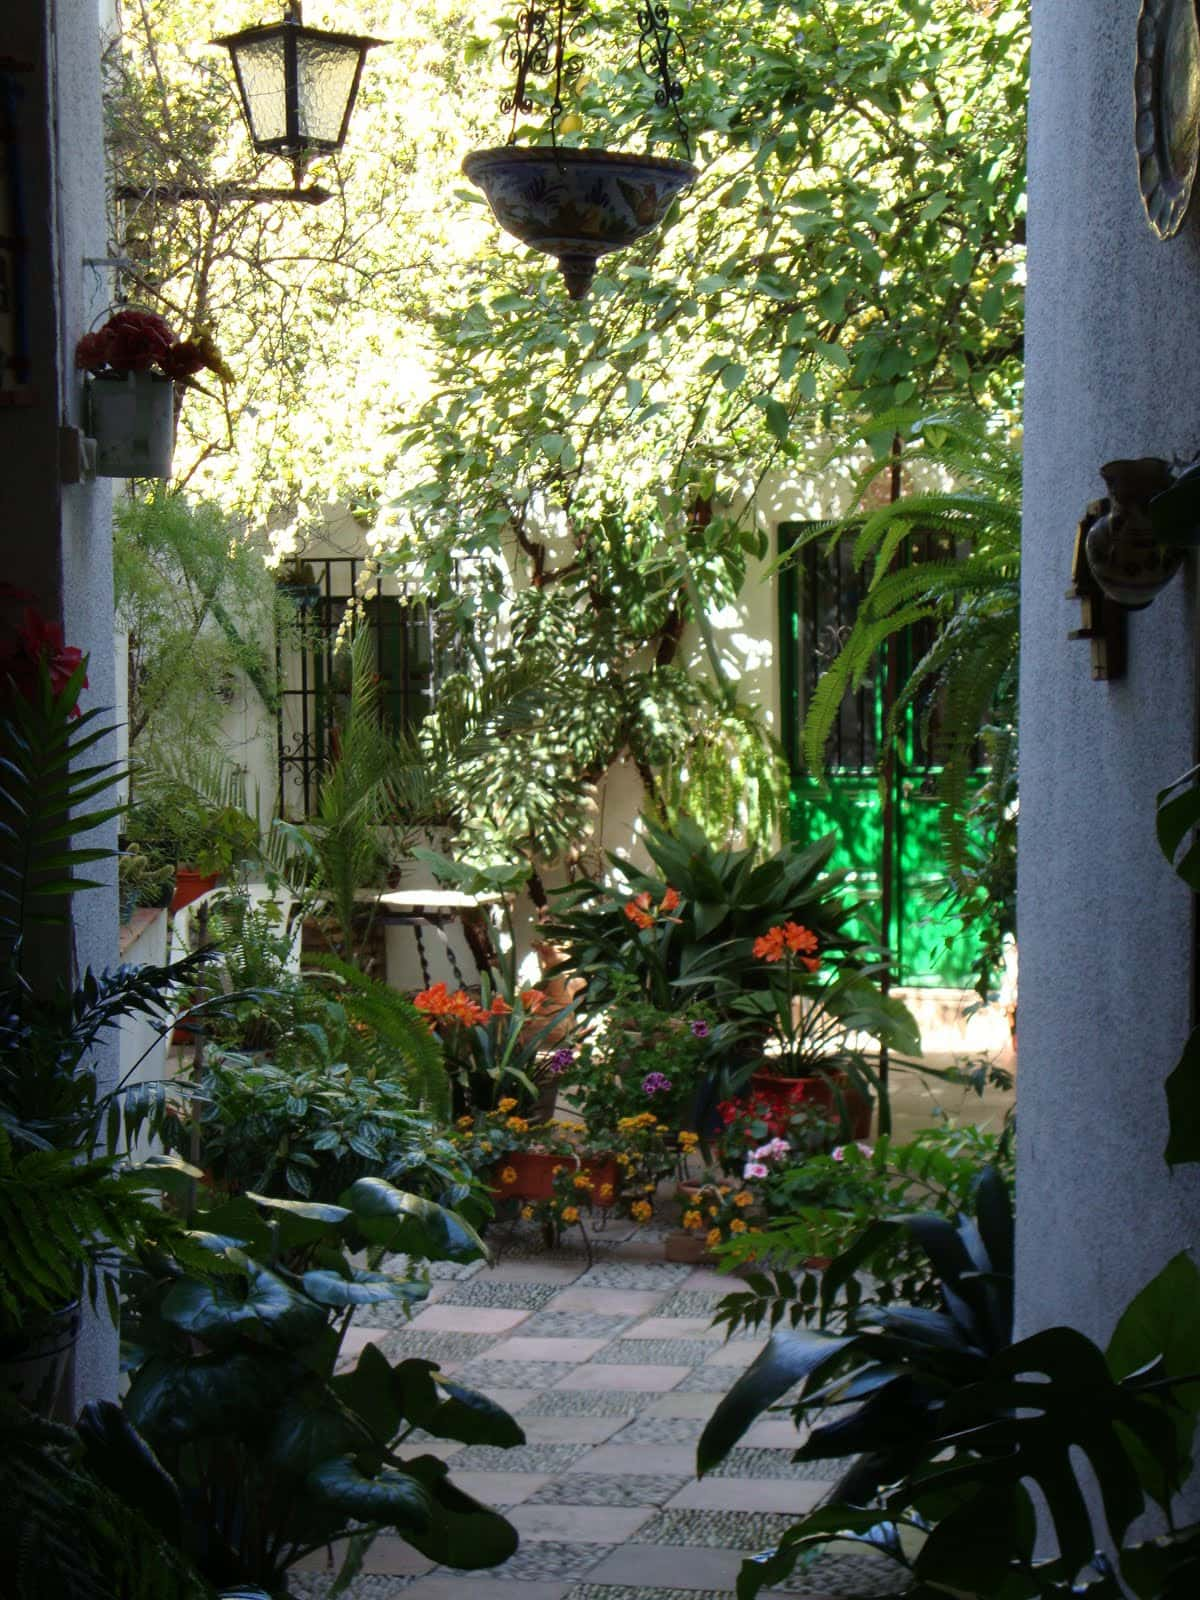 Things to do in Malaga in May: go see the patios